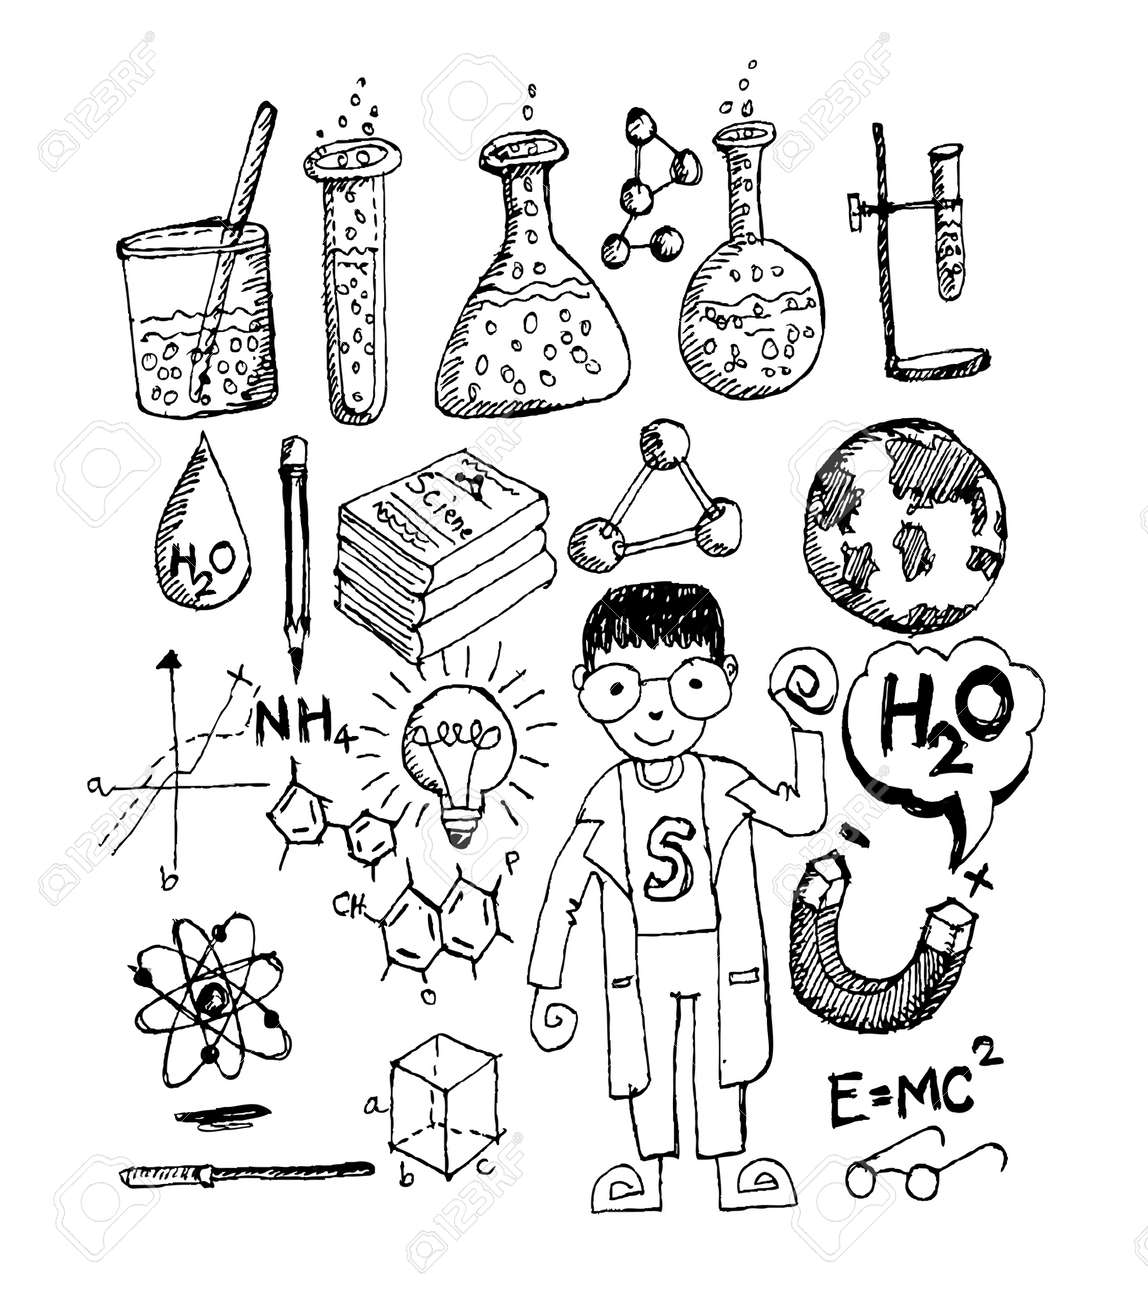 science object in doodle style design Stock Vector - 22850869